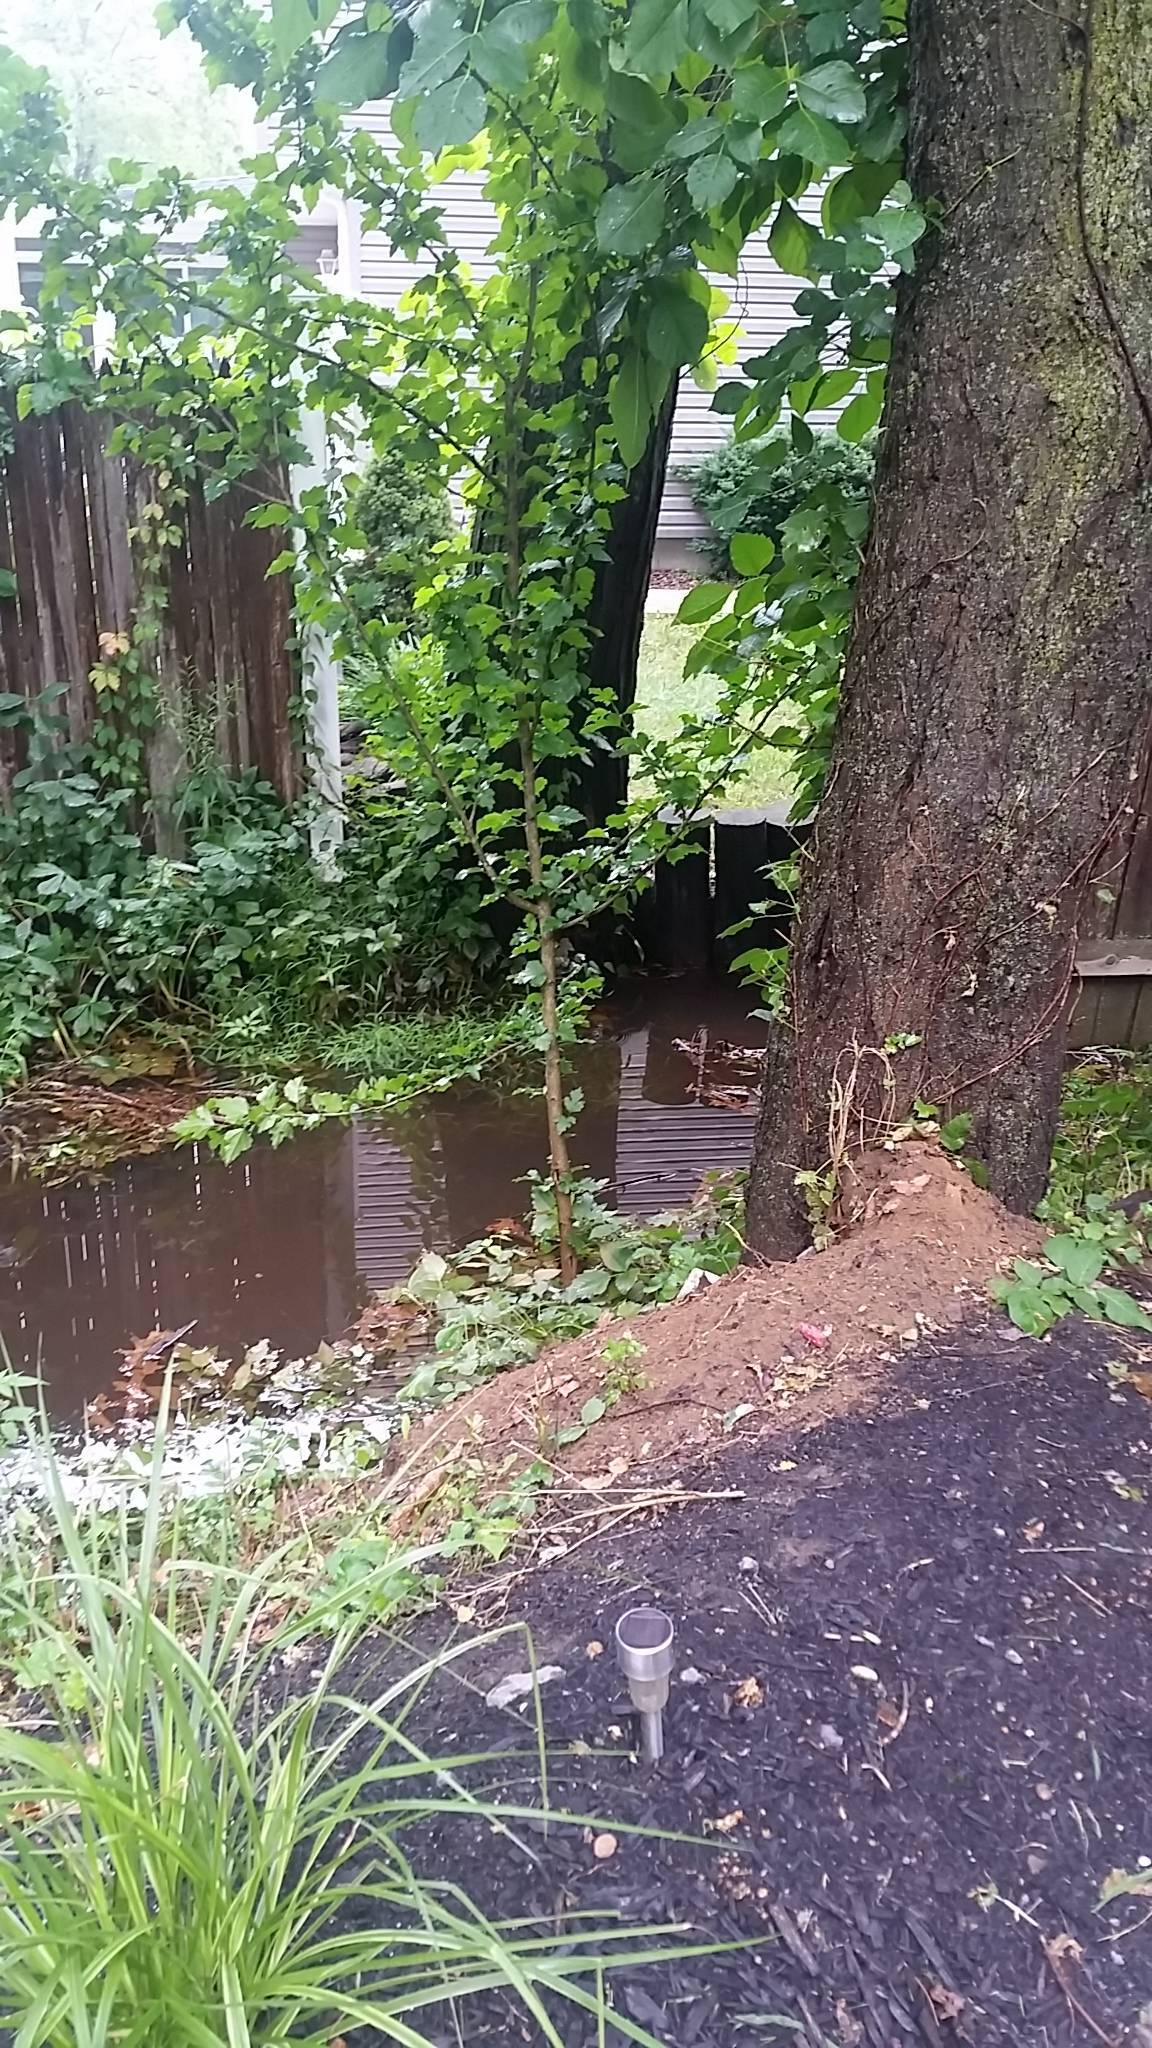 spotswood neighbors search for answers to drainage issue